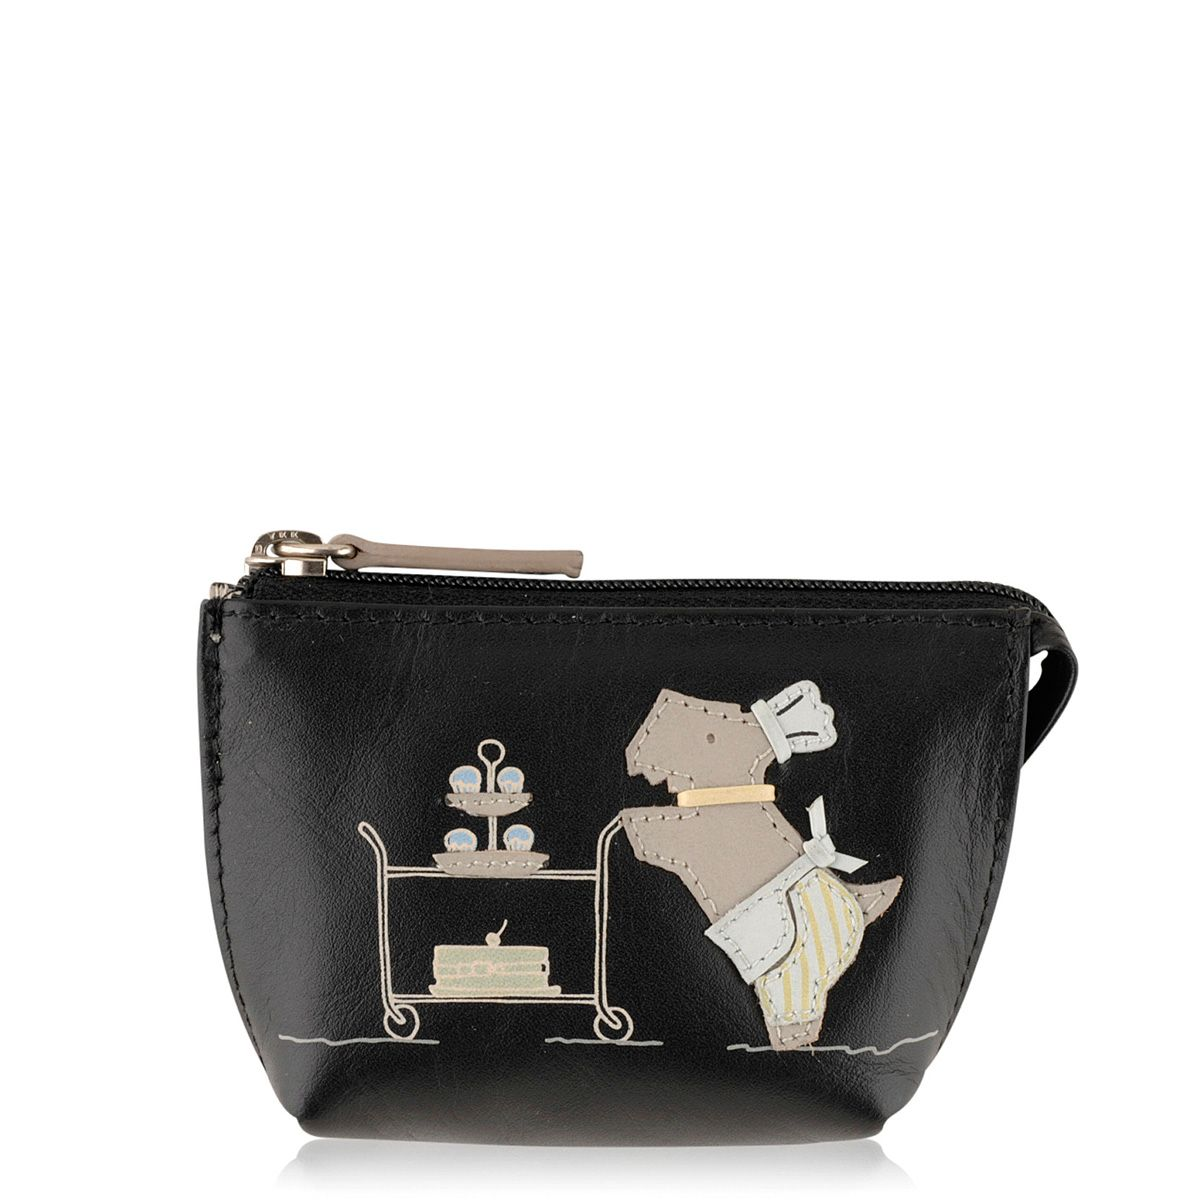 Patisserie Raderlie black coin purse